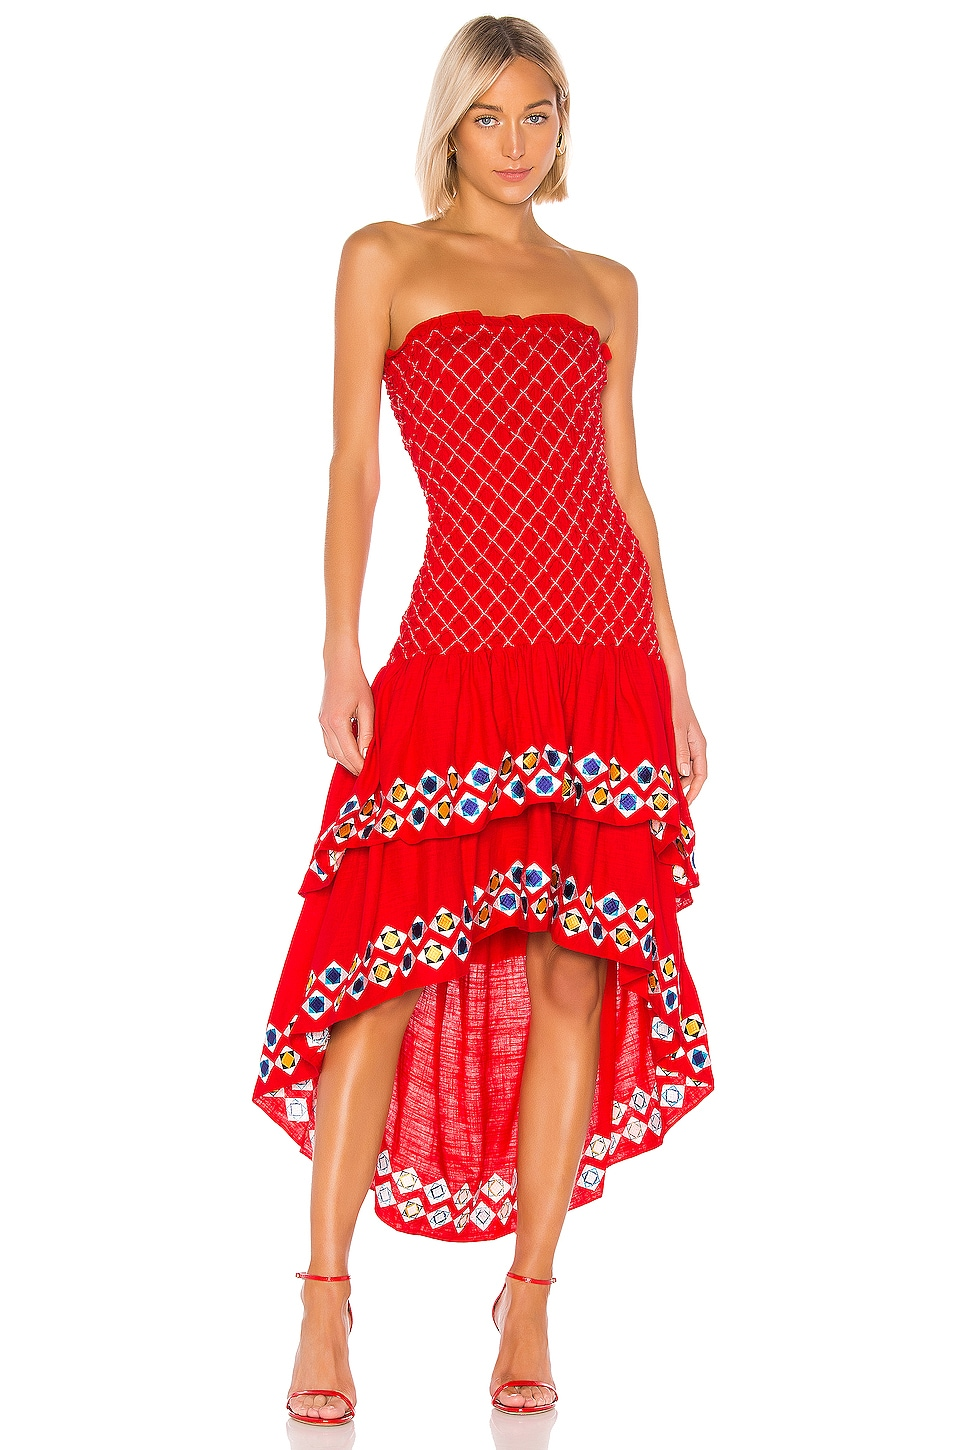 Alexis Revada Dress in Red Geometric Embroidery